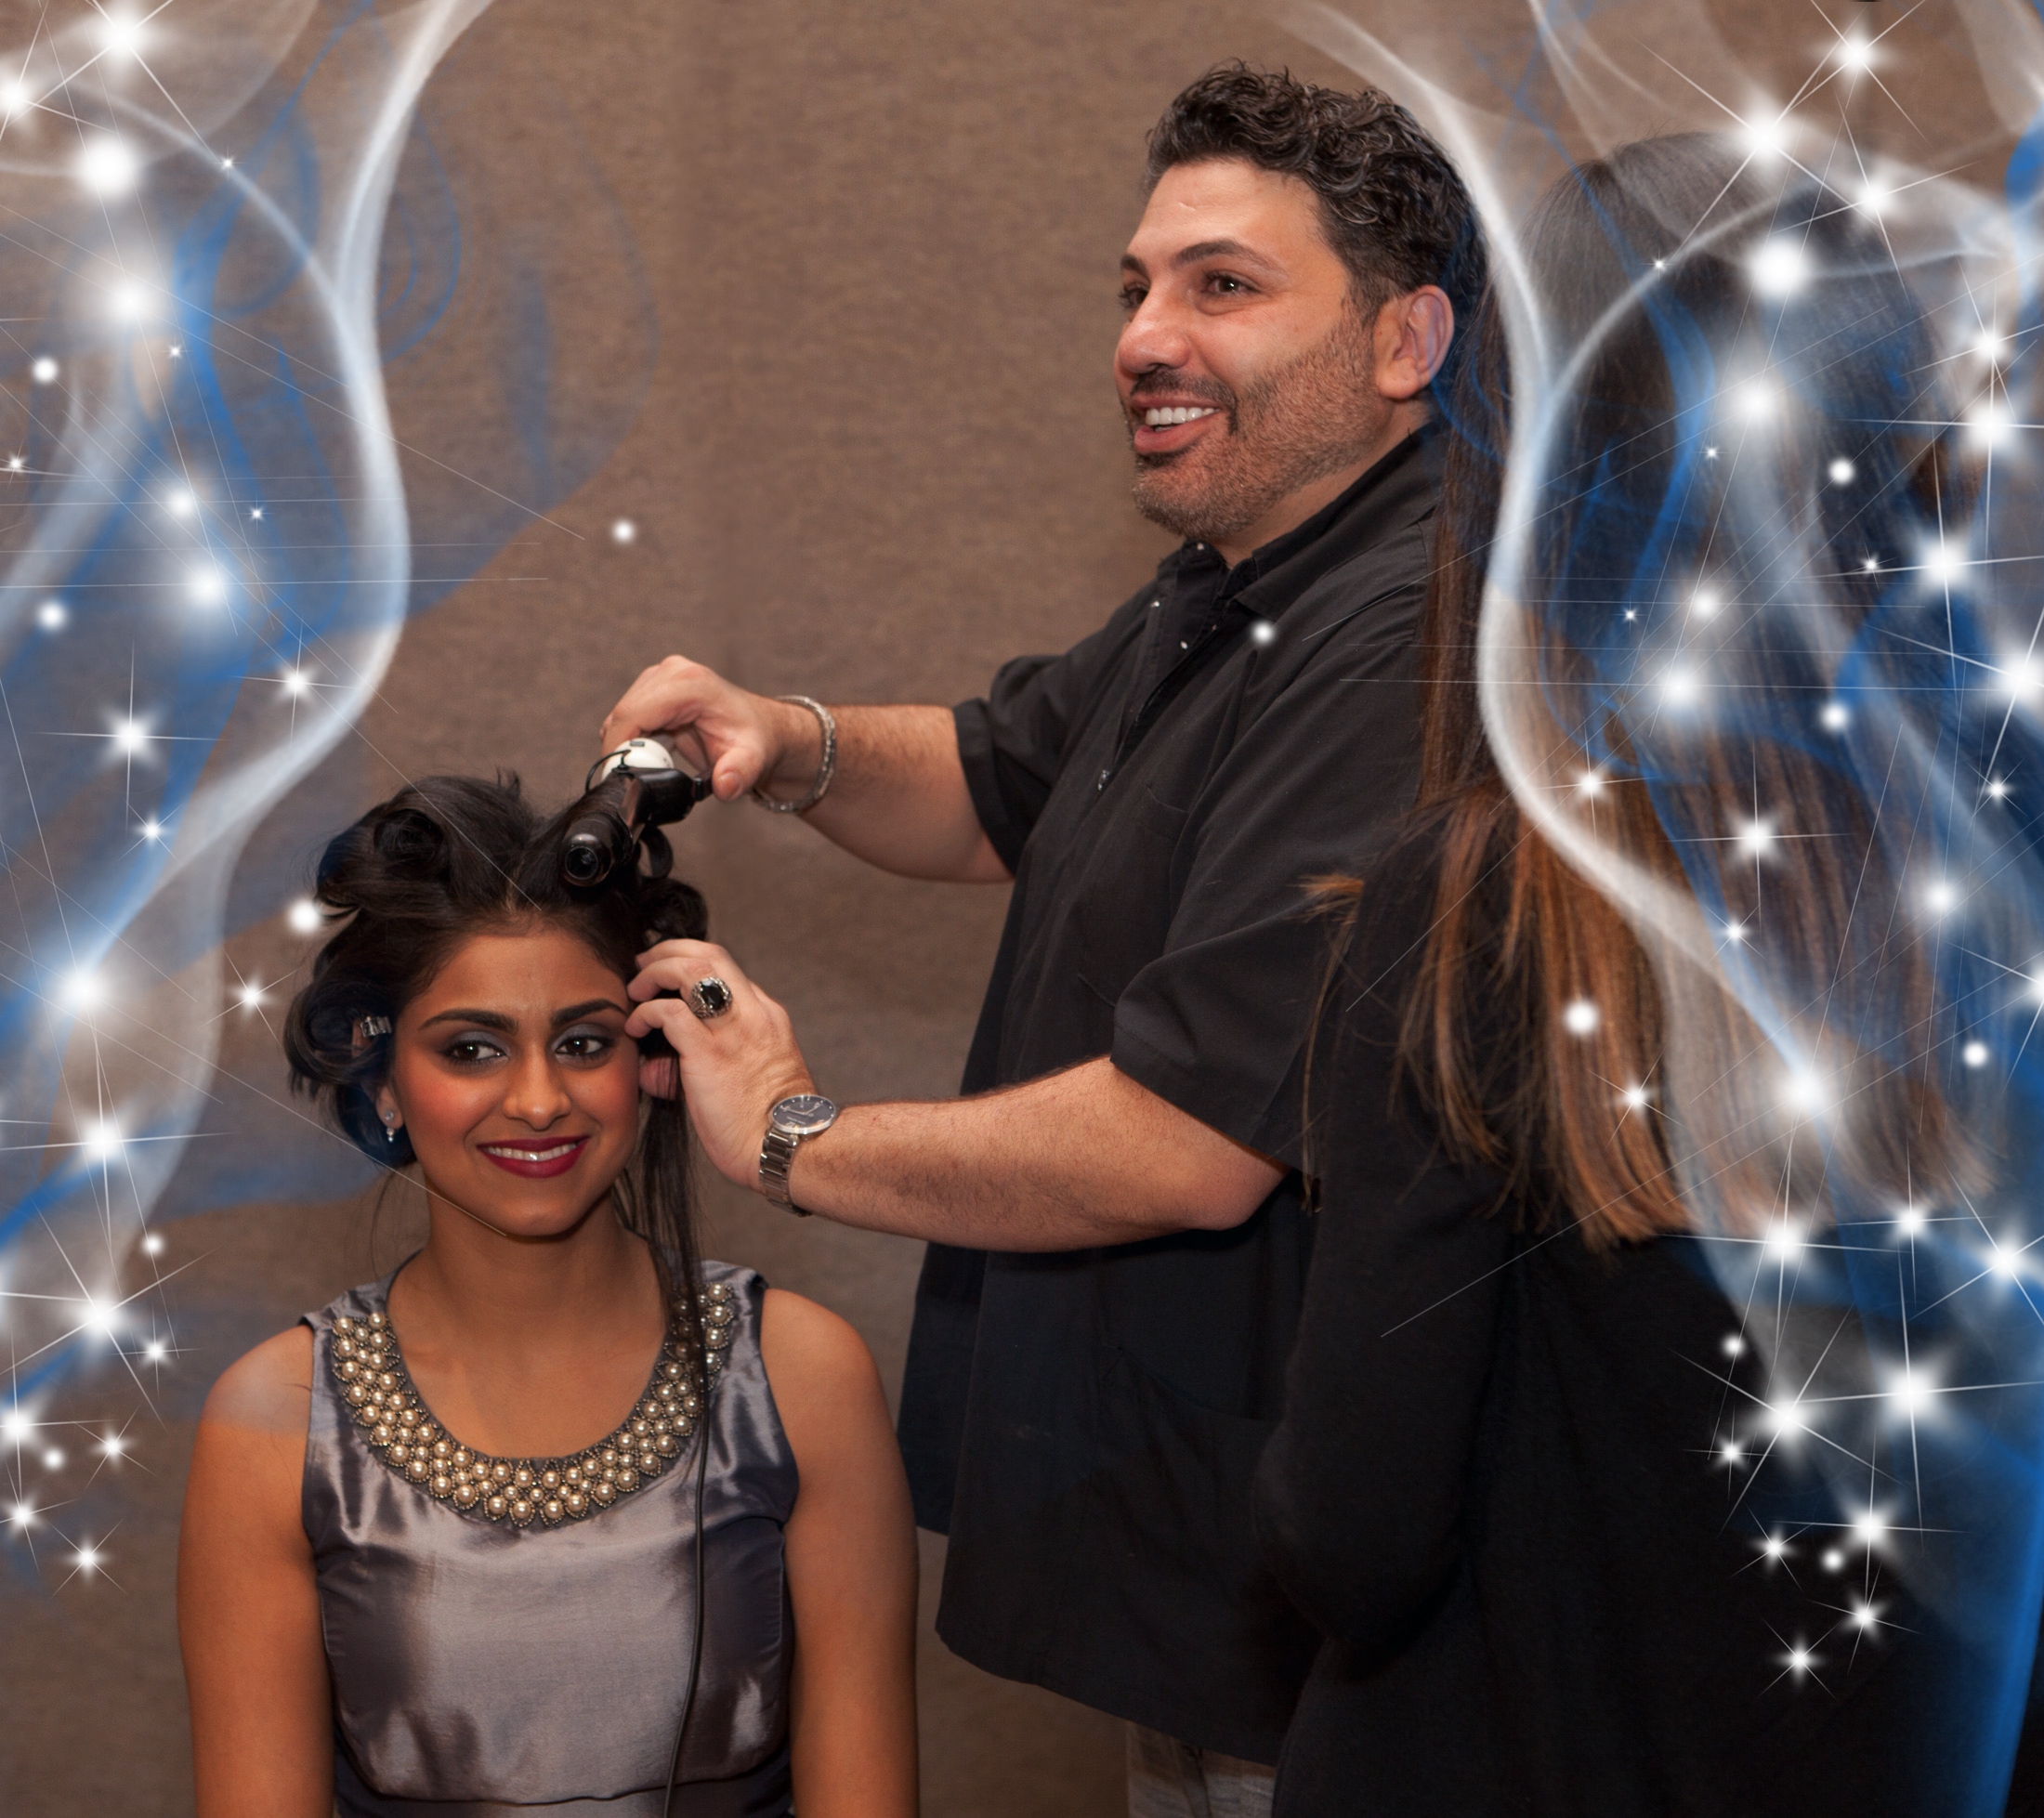 Meghna Verma getting all dolled up for the prom courtesy of a volunteer professional make up and hair stylist